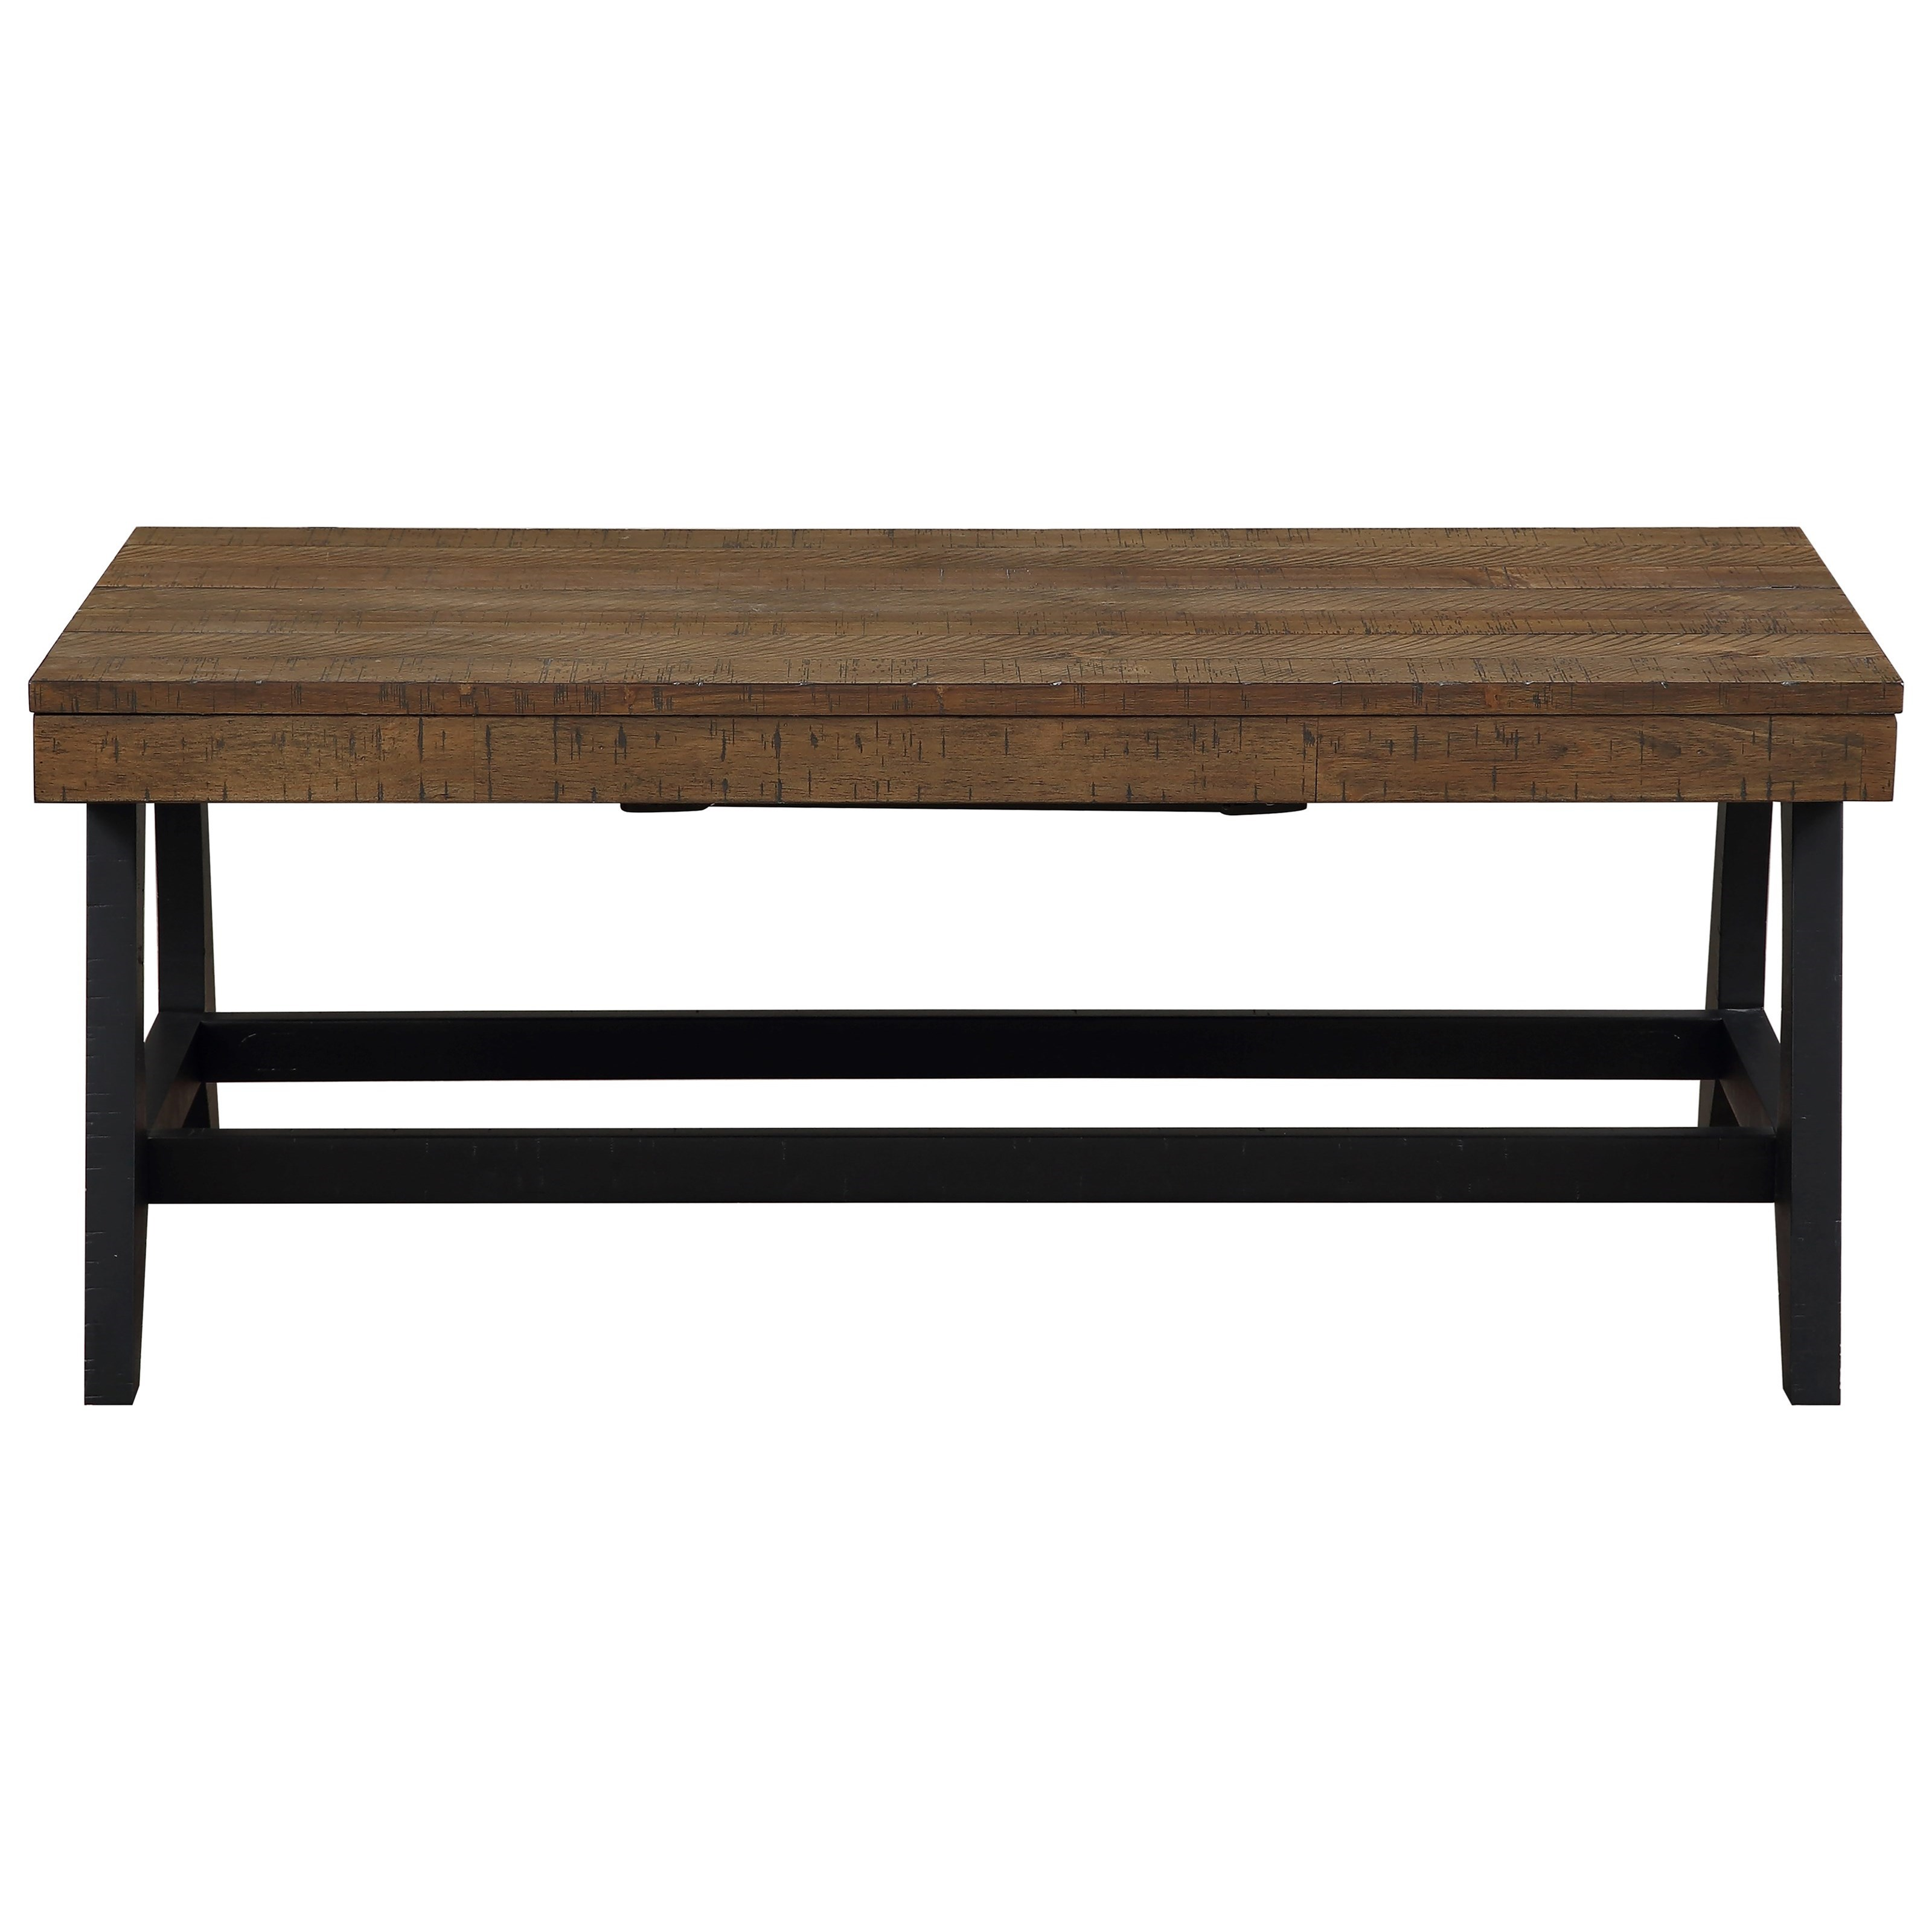 Ralston Lift-Top Coffee Table by Steve Silver at Walker's Furniture